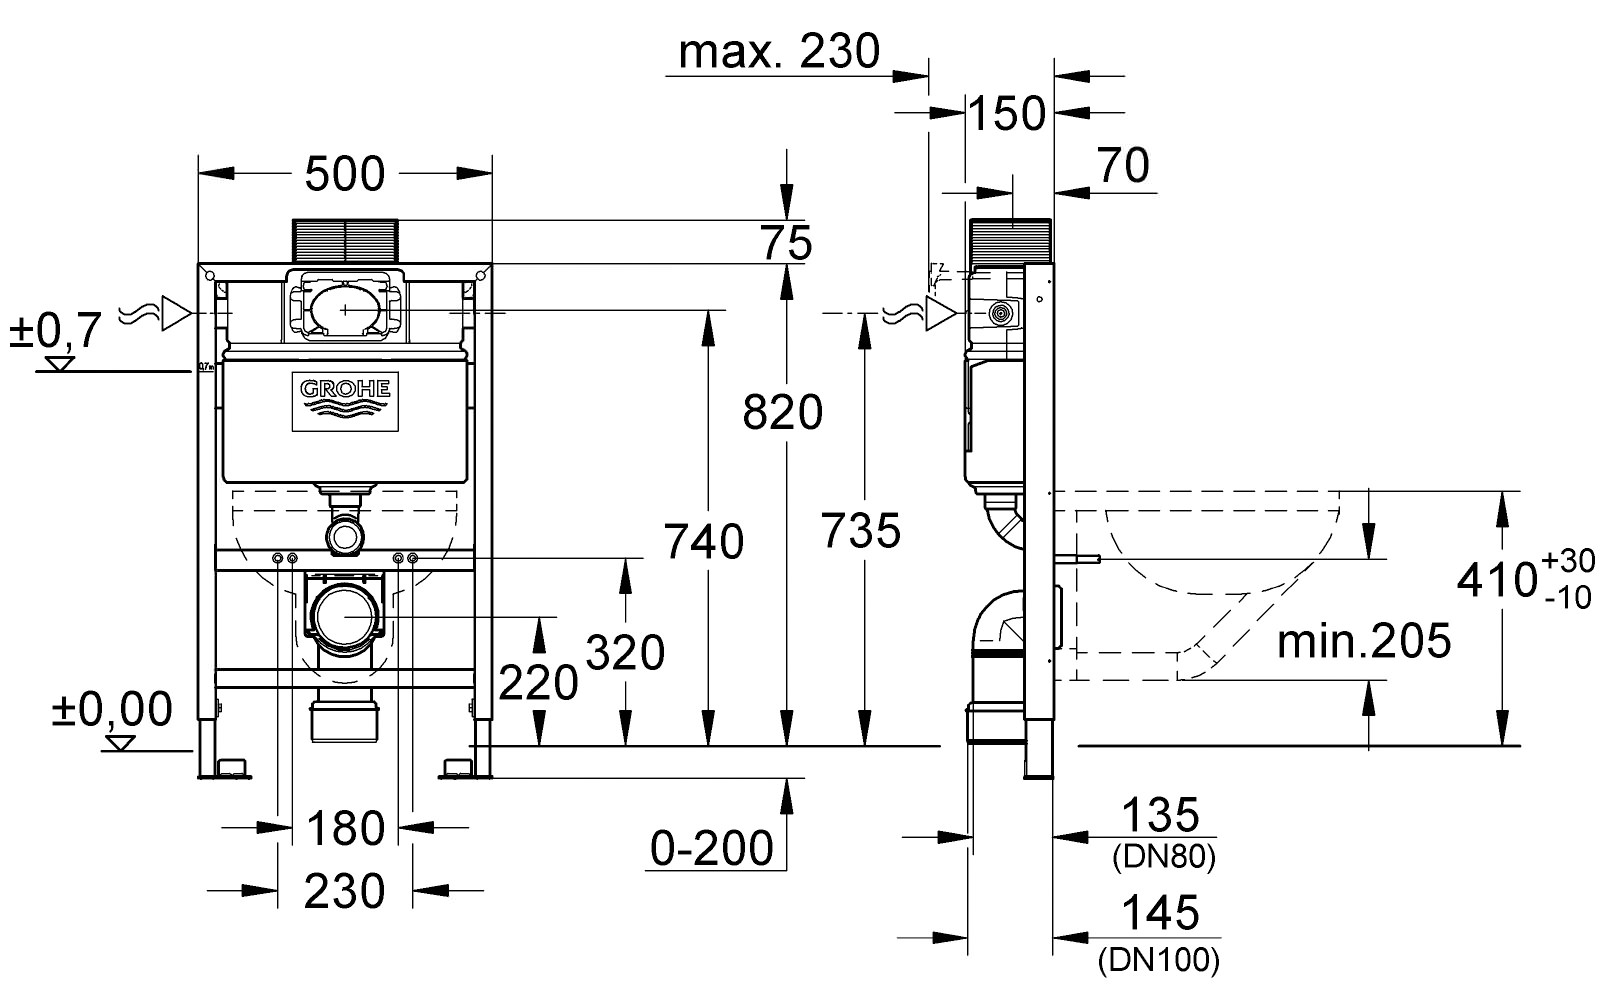 Pid Ex les also Saw together with Different Types Of Fire Extinguishers Used On Ships in addition Flow Meter Measurement Techniques Types additionally Anatomy. on simple gas drawing